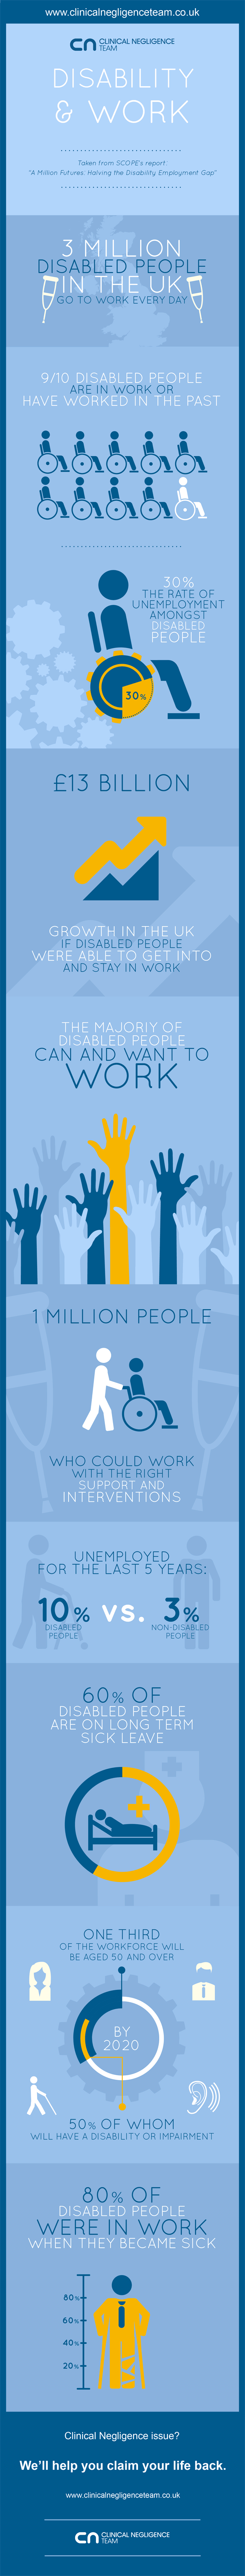 clin-neg-disability-graphic-web